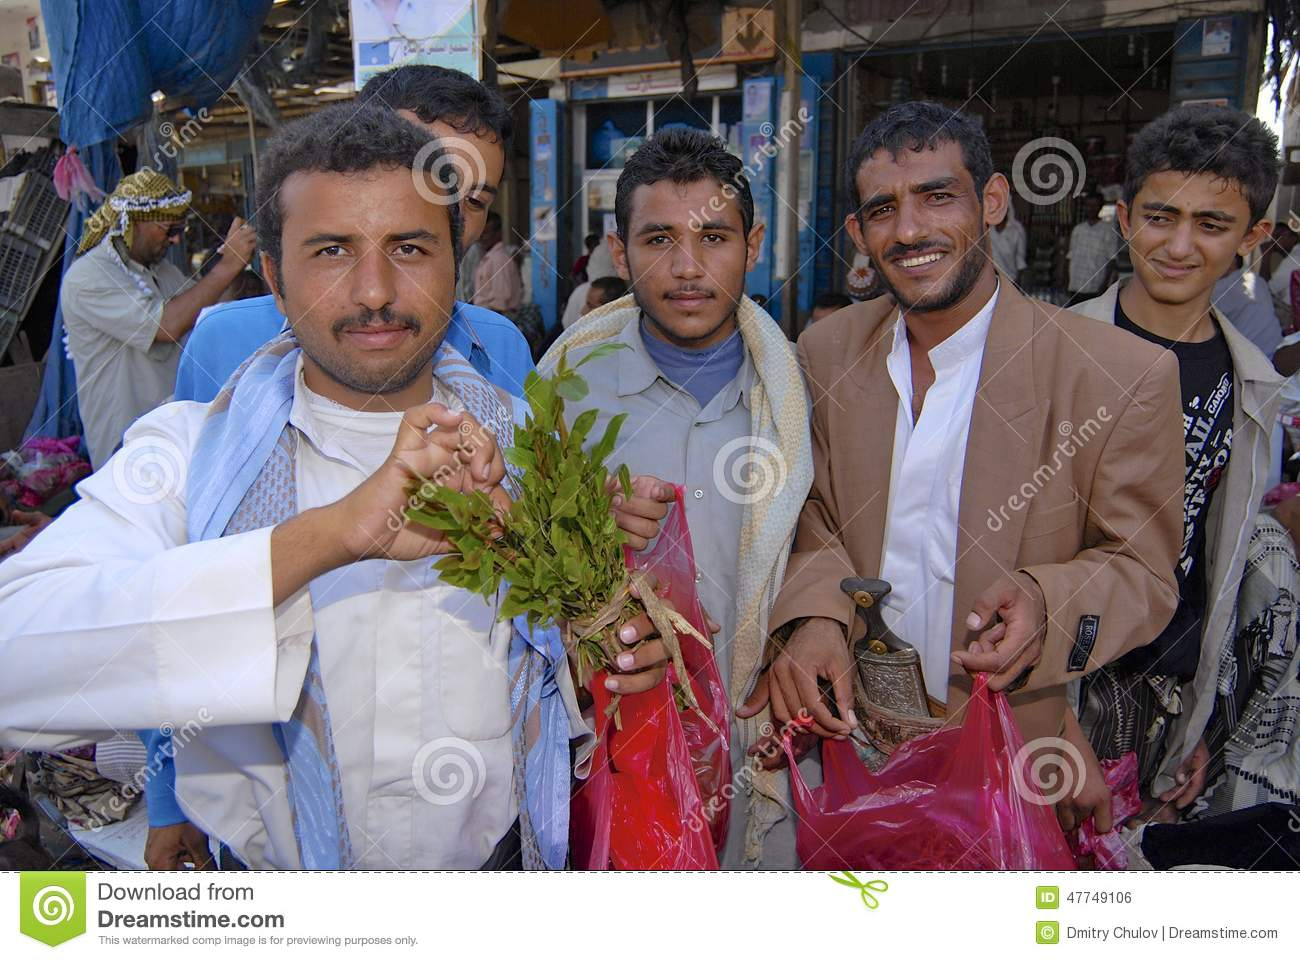 ... . Chewing khat (drug of abuse) is a major social problem in Yemen